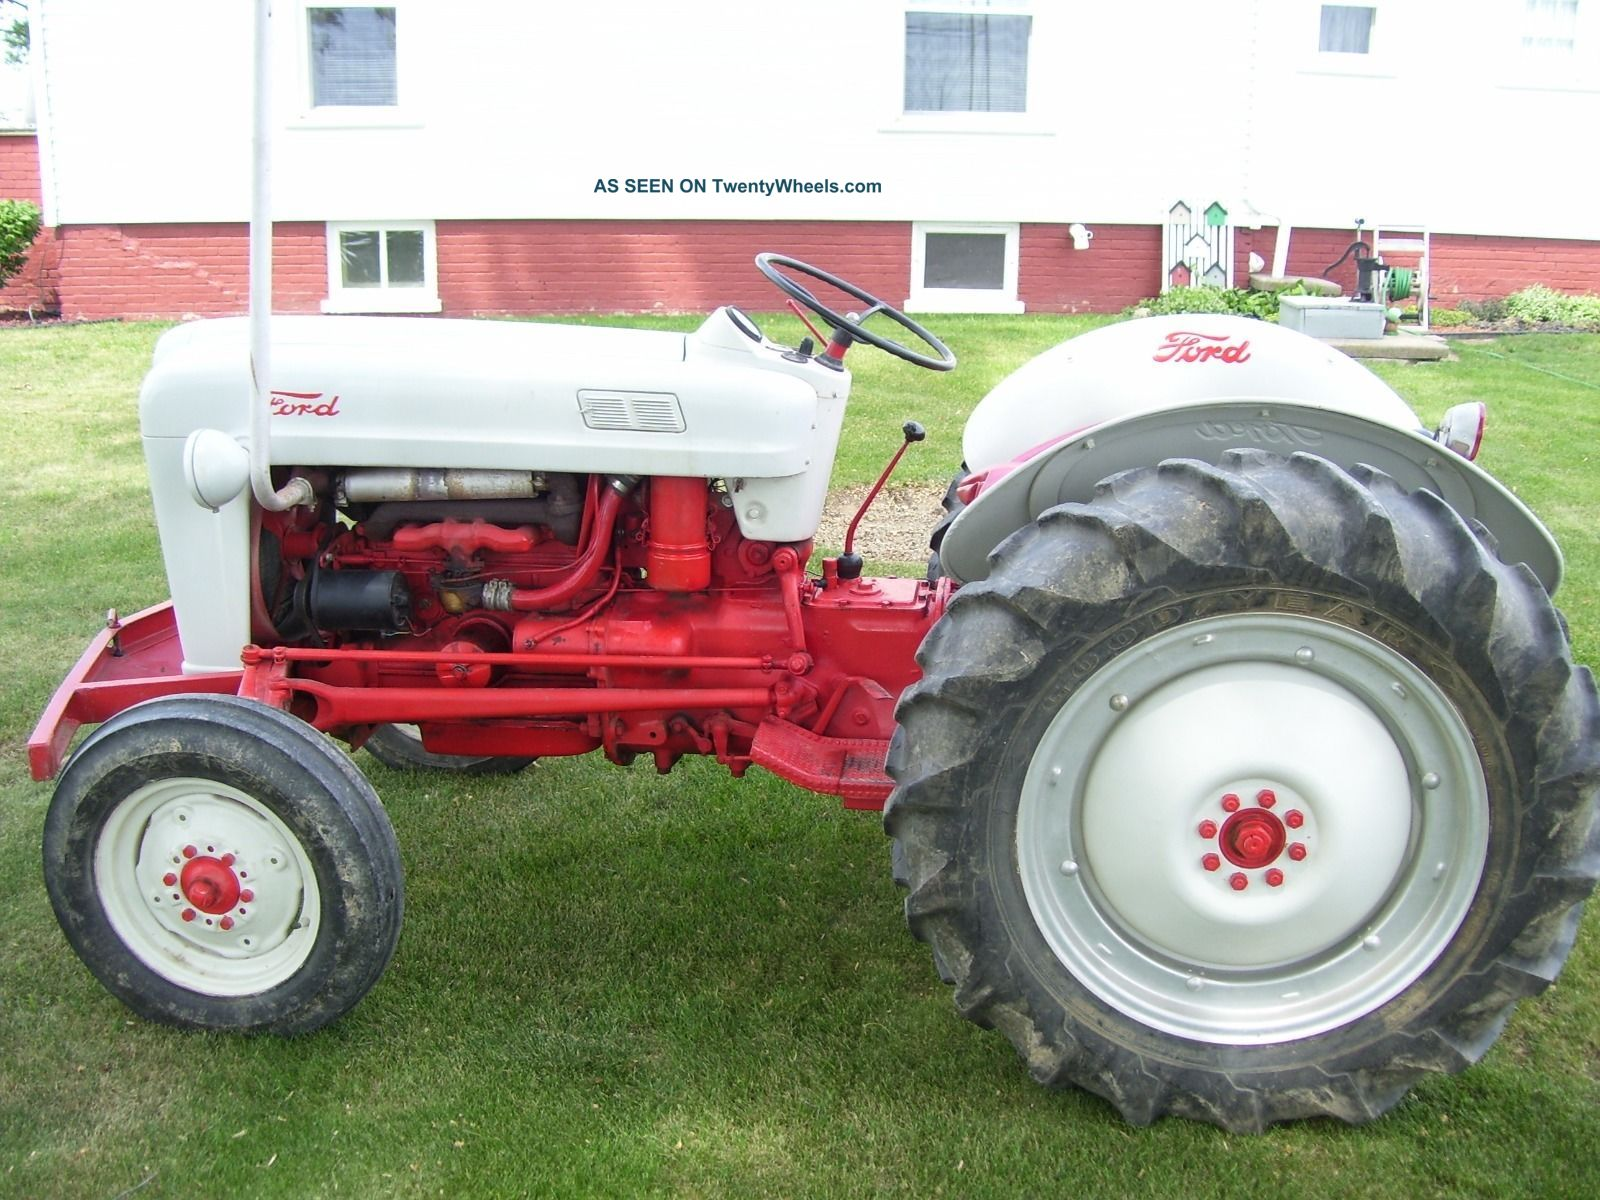 Ford Jubilee Specifications : Ford golden jubilee tractor